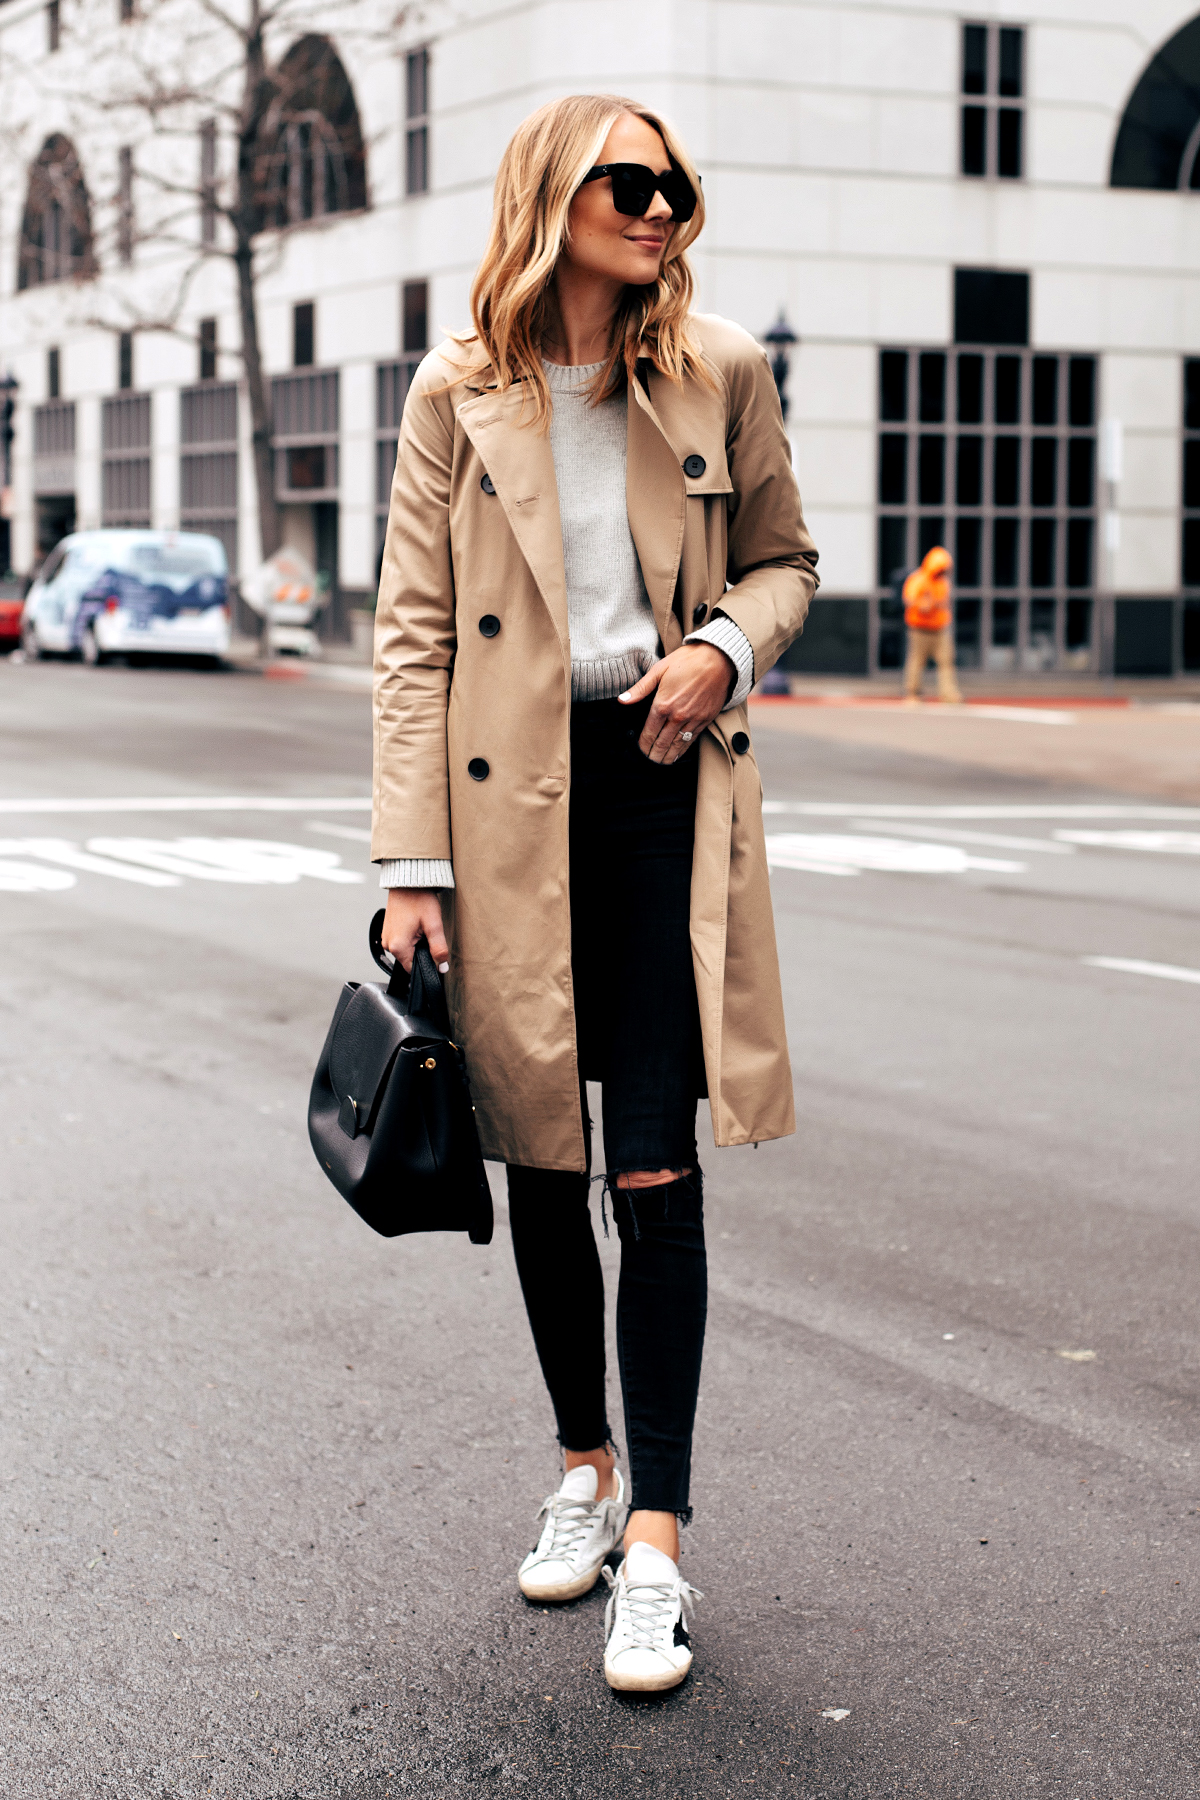 Fashion Jackson Capsule Wardrobe Wearing Everlane Trench Coat Grey Sweater Madewell Black Ripped Jeans Golden Goose Sneakers